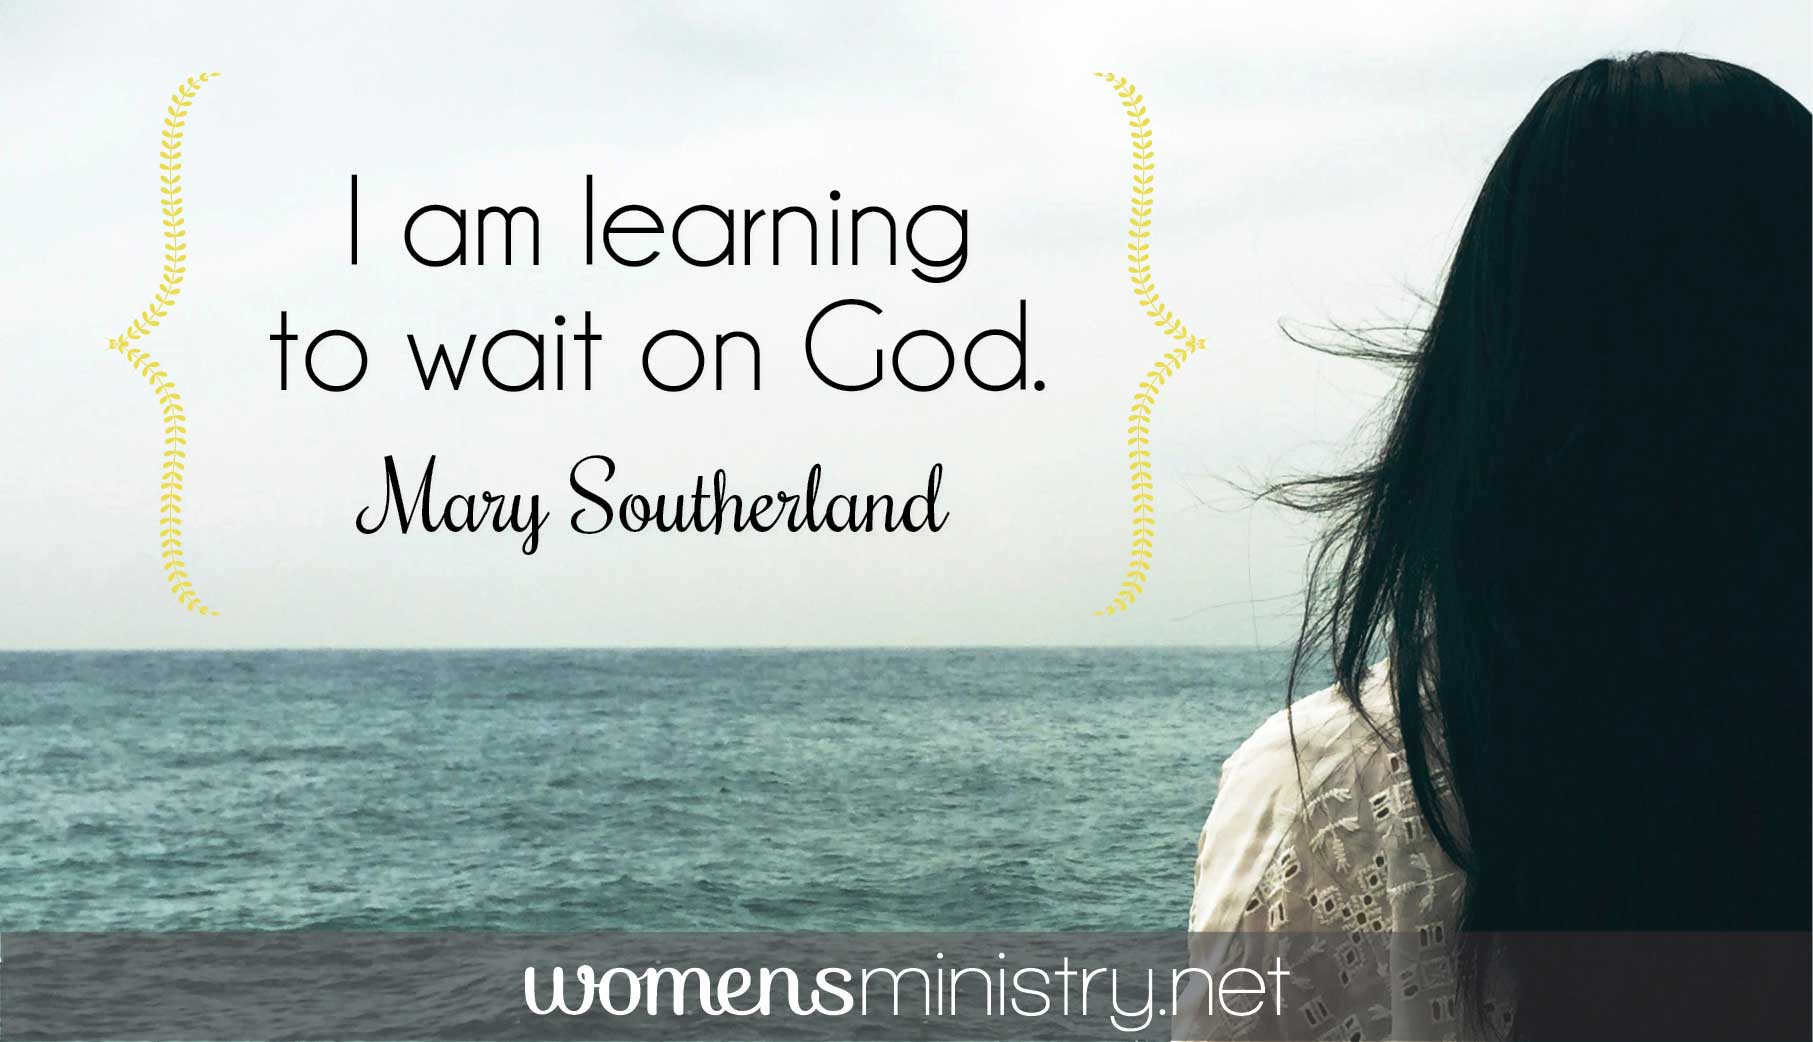 Mary Southerland quote image